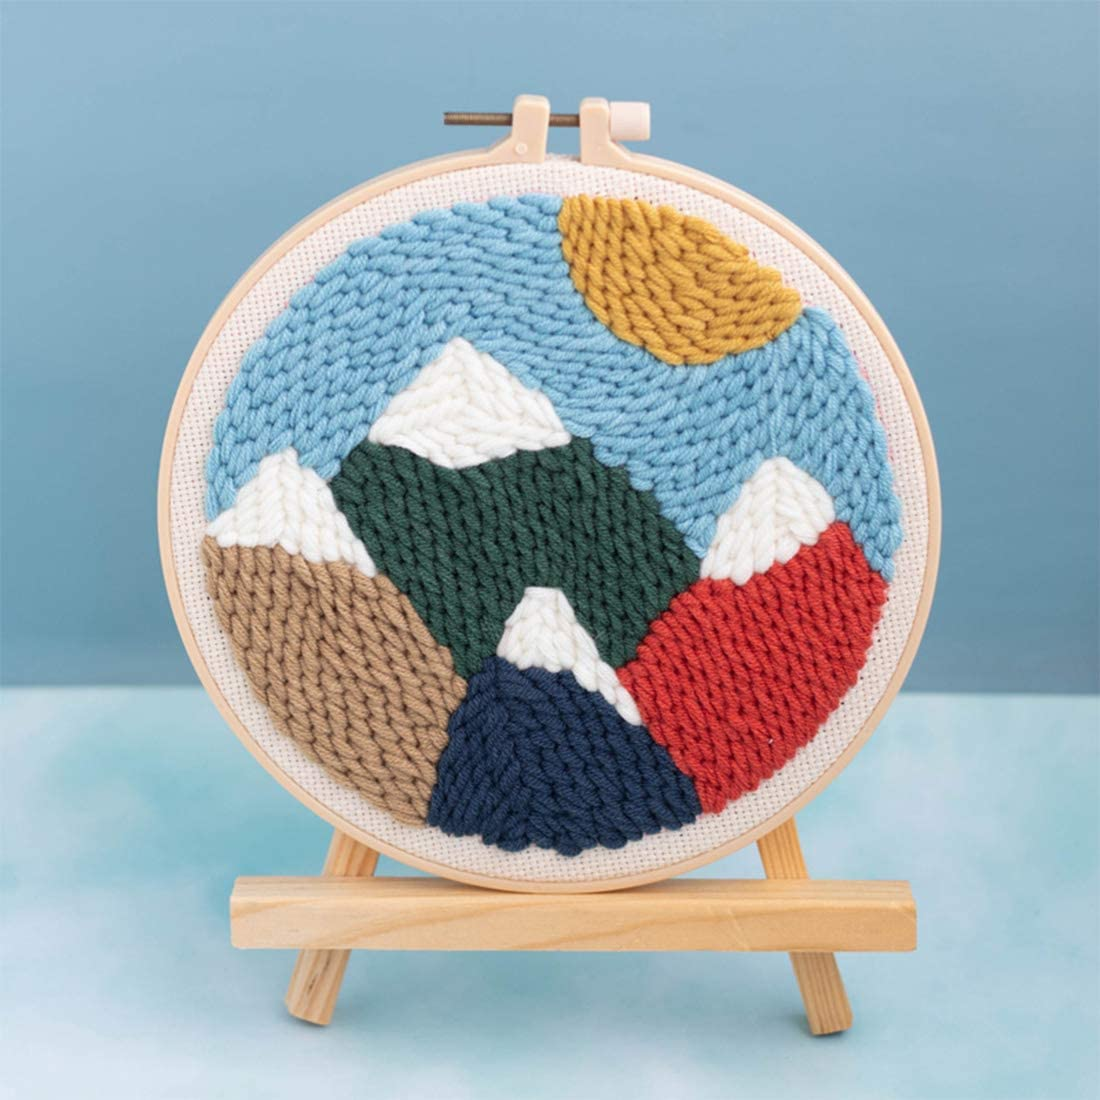 Rug Hooking Kit for Adults Kids Beginner Embroidery Frame and Holder DIY Latch Hook Kits with Punch Needle Scenery 1